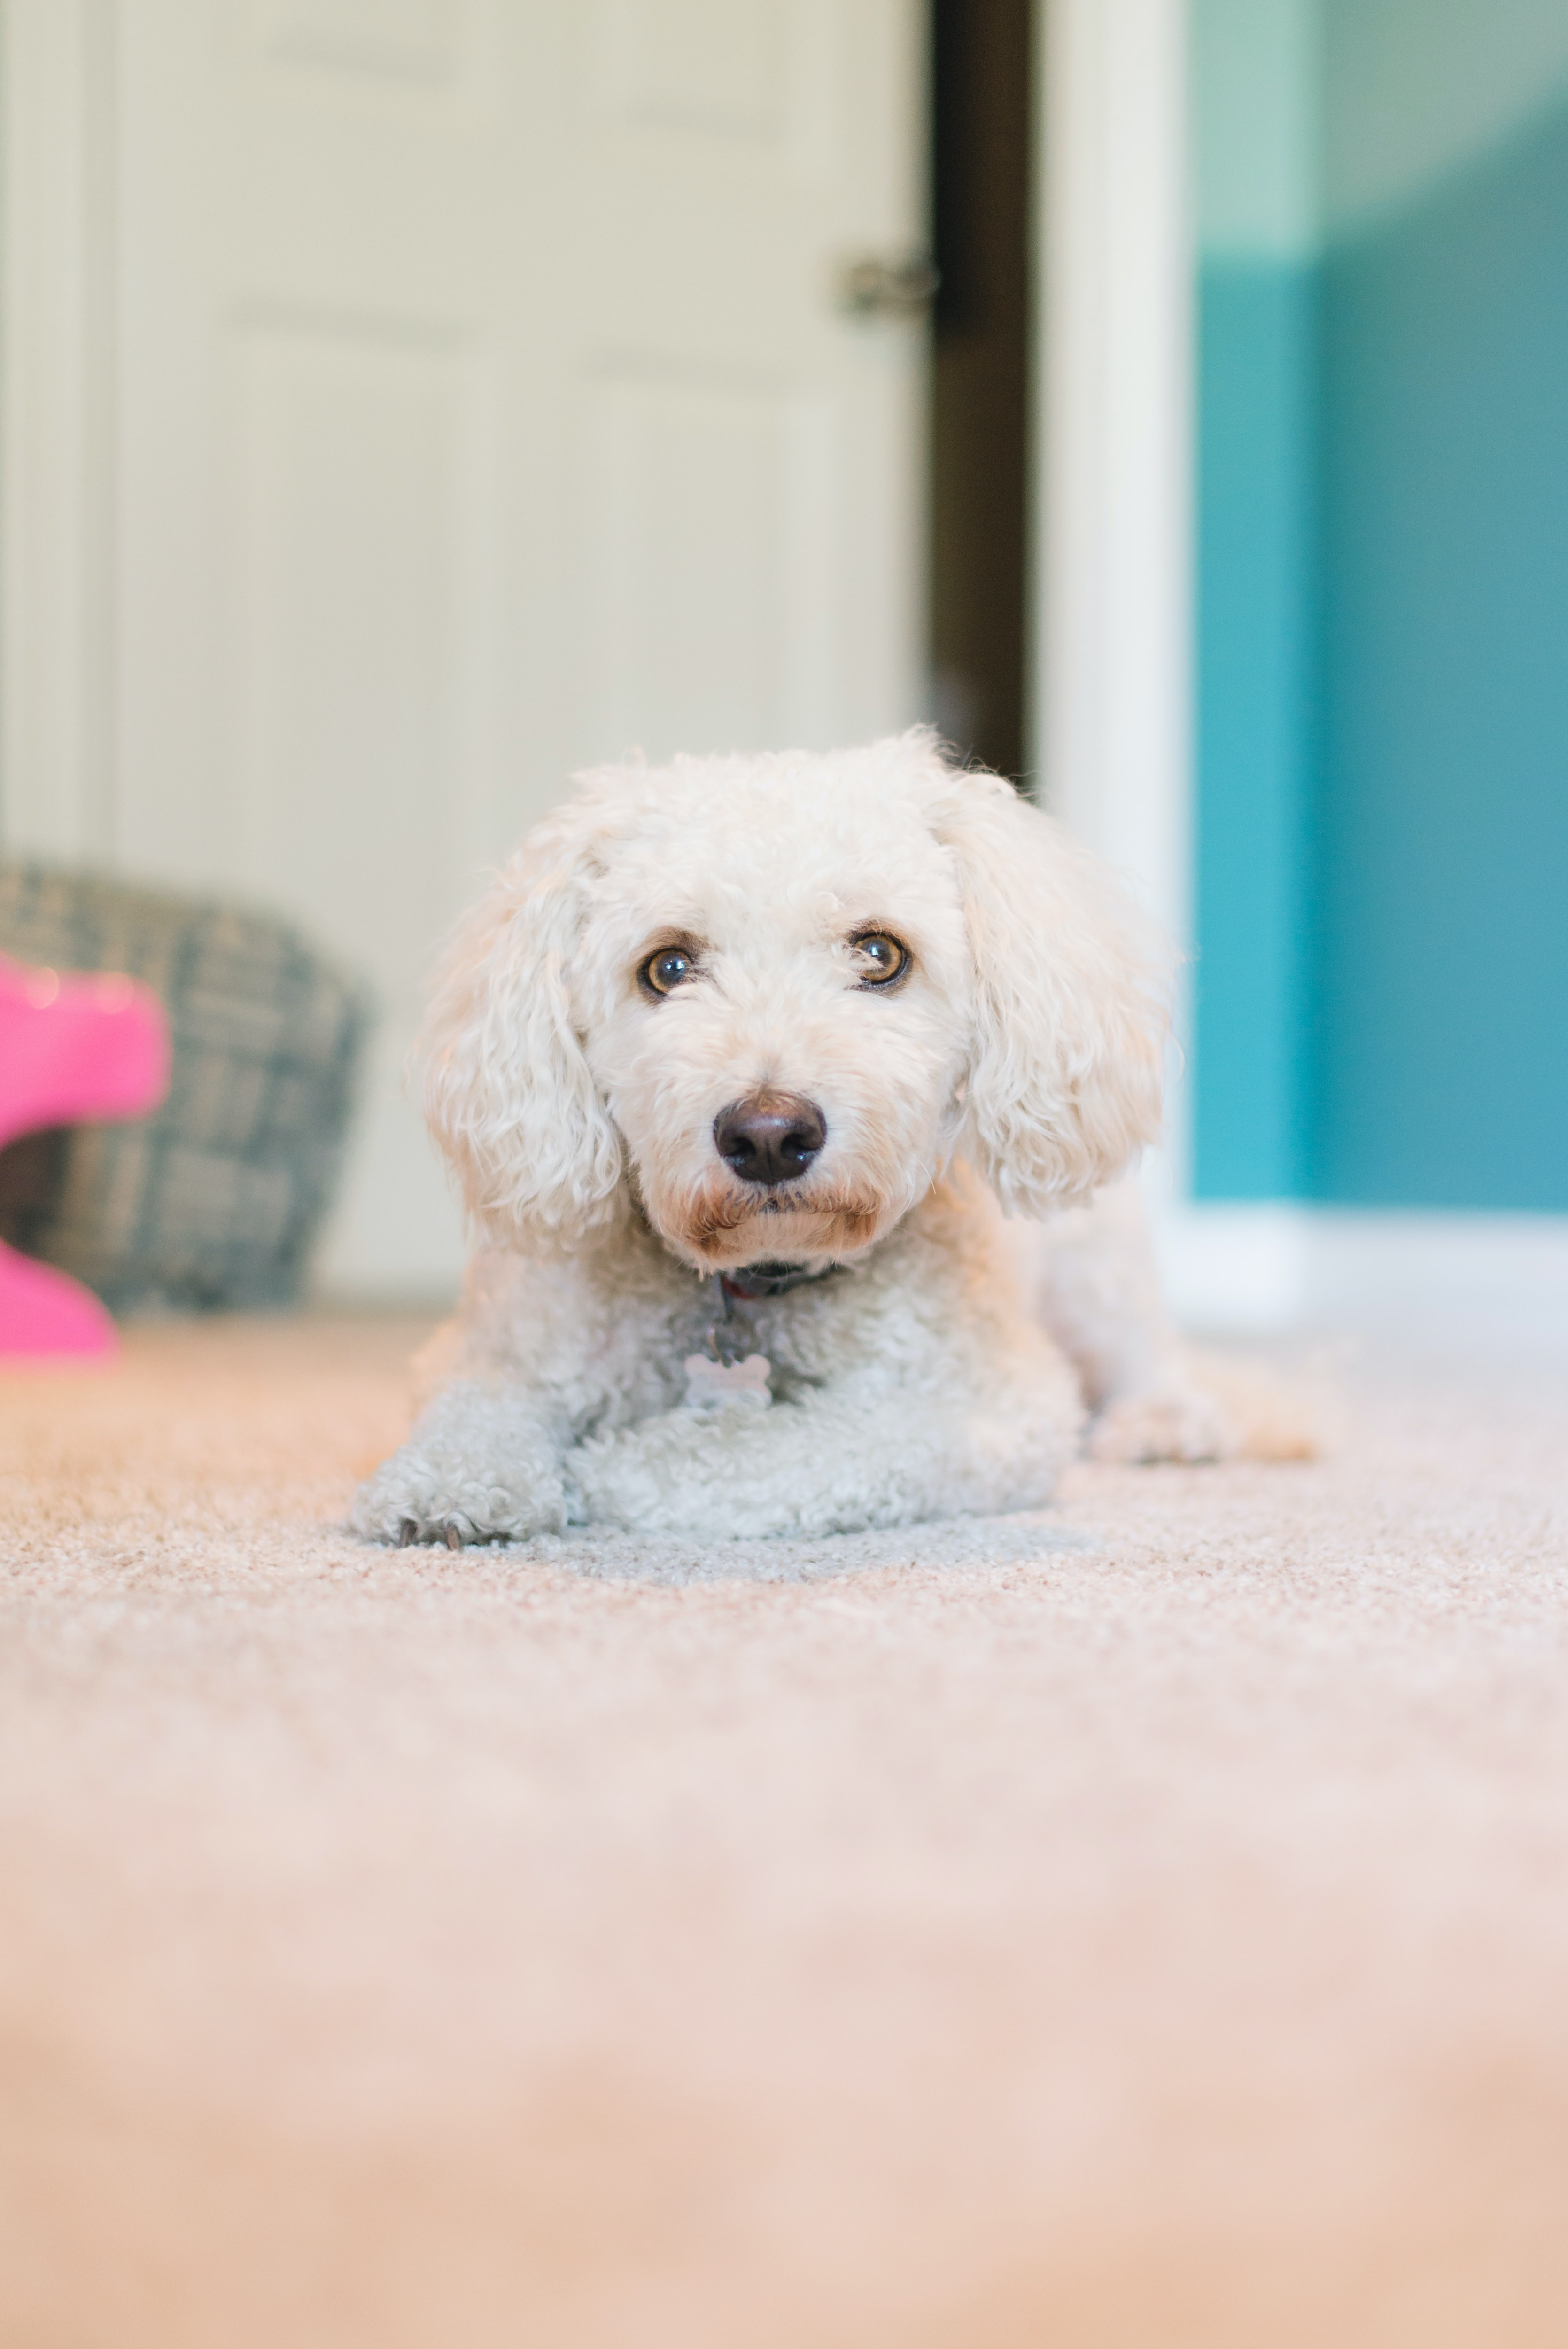 adult white toy poodle laying down on carpet